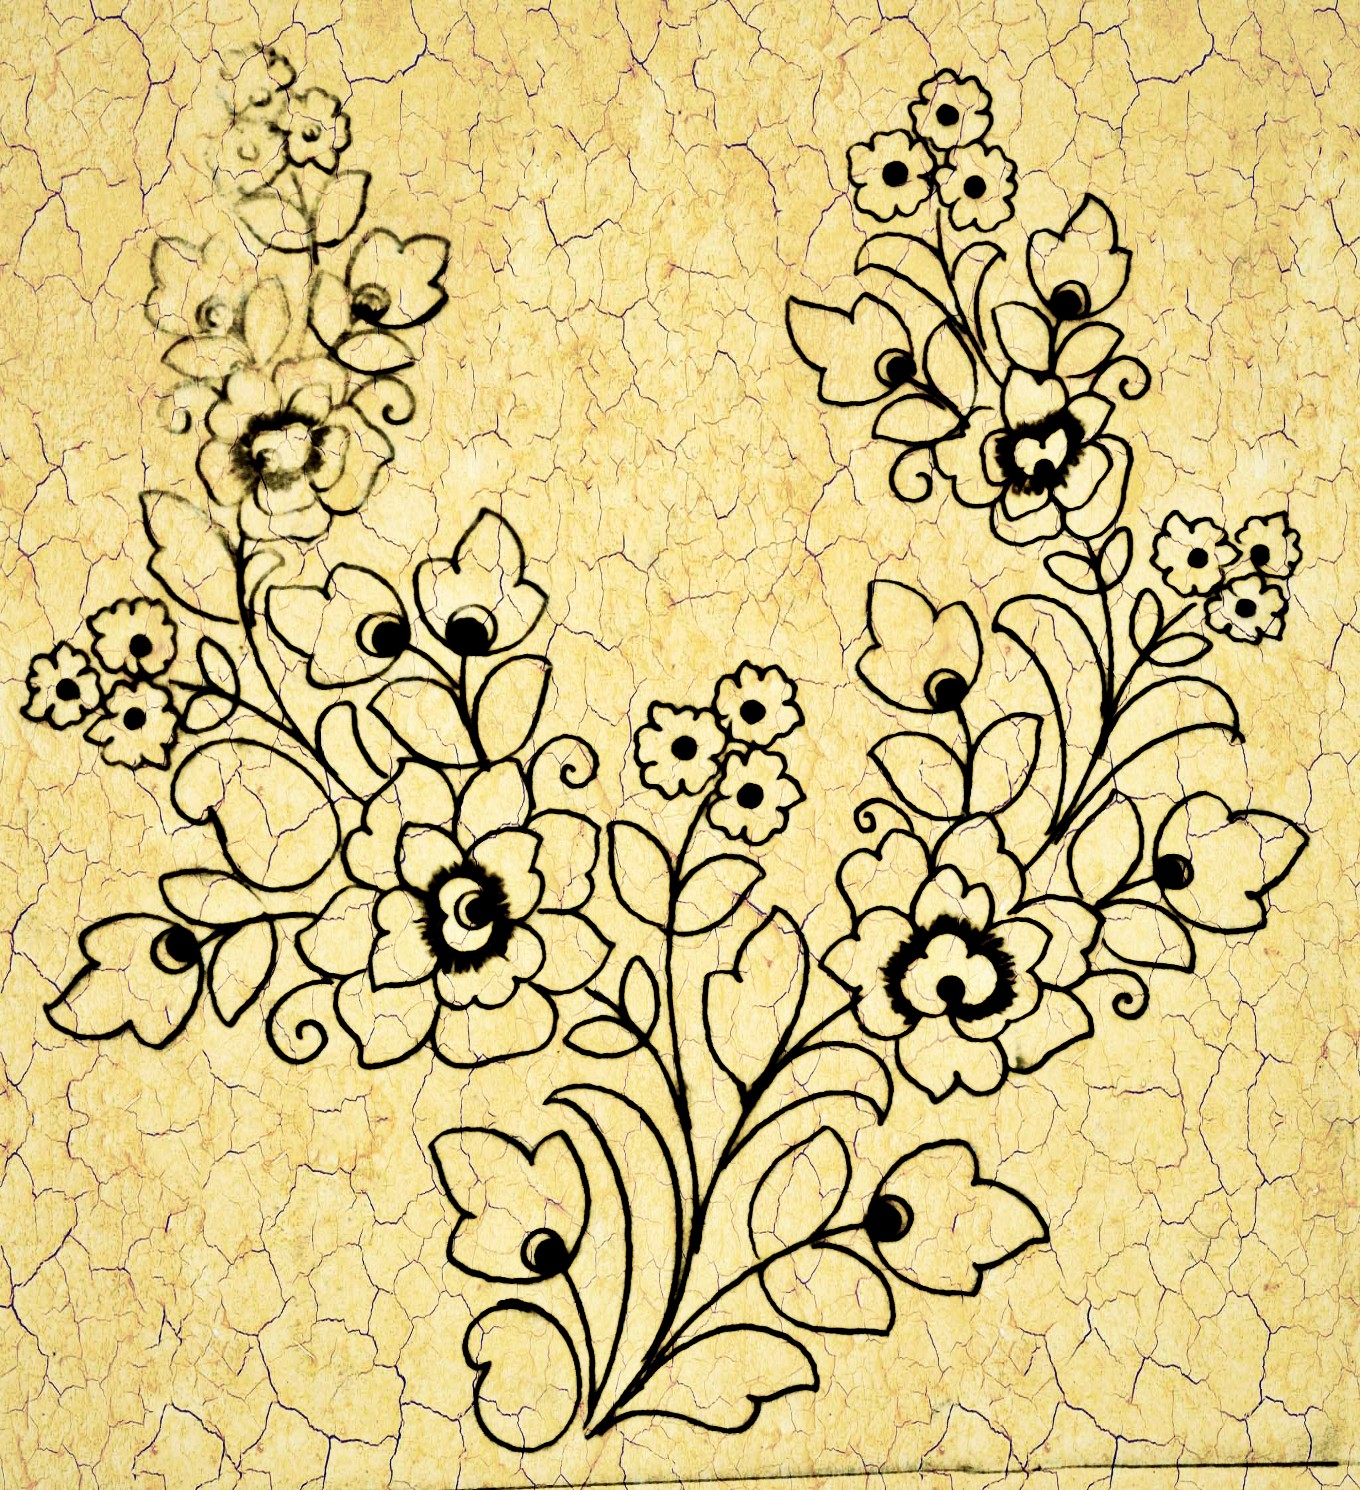 How to draw flowers design for embroidery/hand embroidery design drawing/free download top 3 embroidery design images.